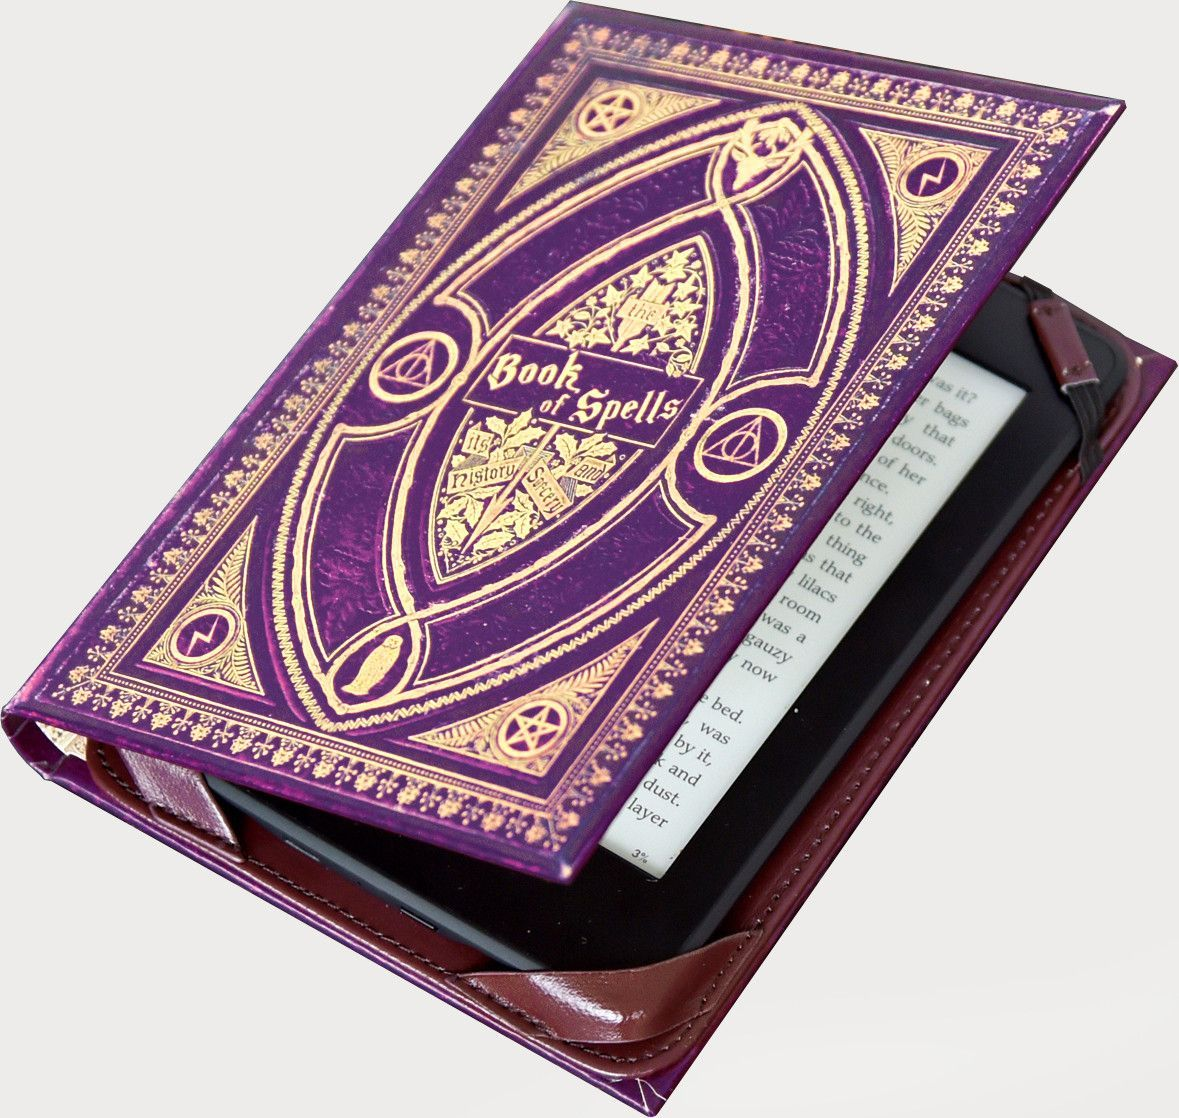 Amazon Libros Ebook Free Shipping Book Of Spells Ebook Holder Inspired By